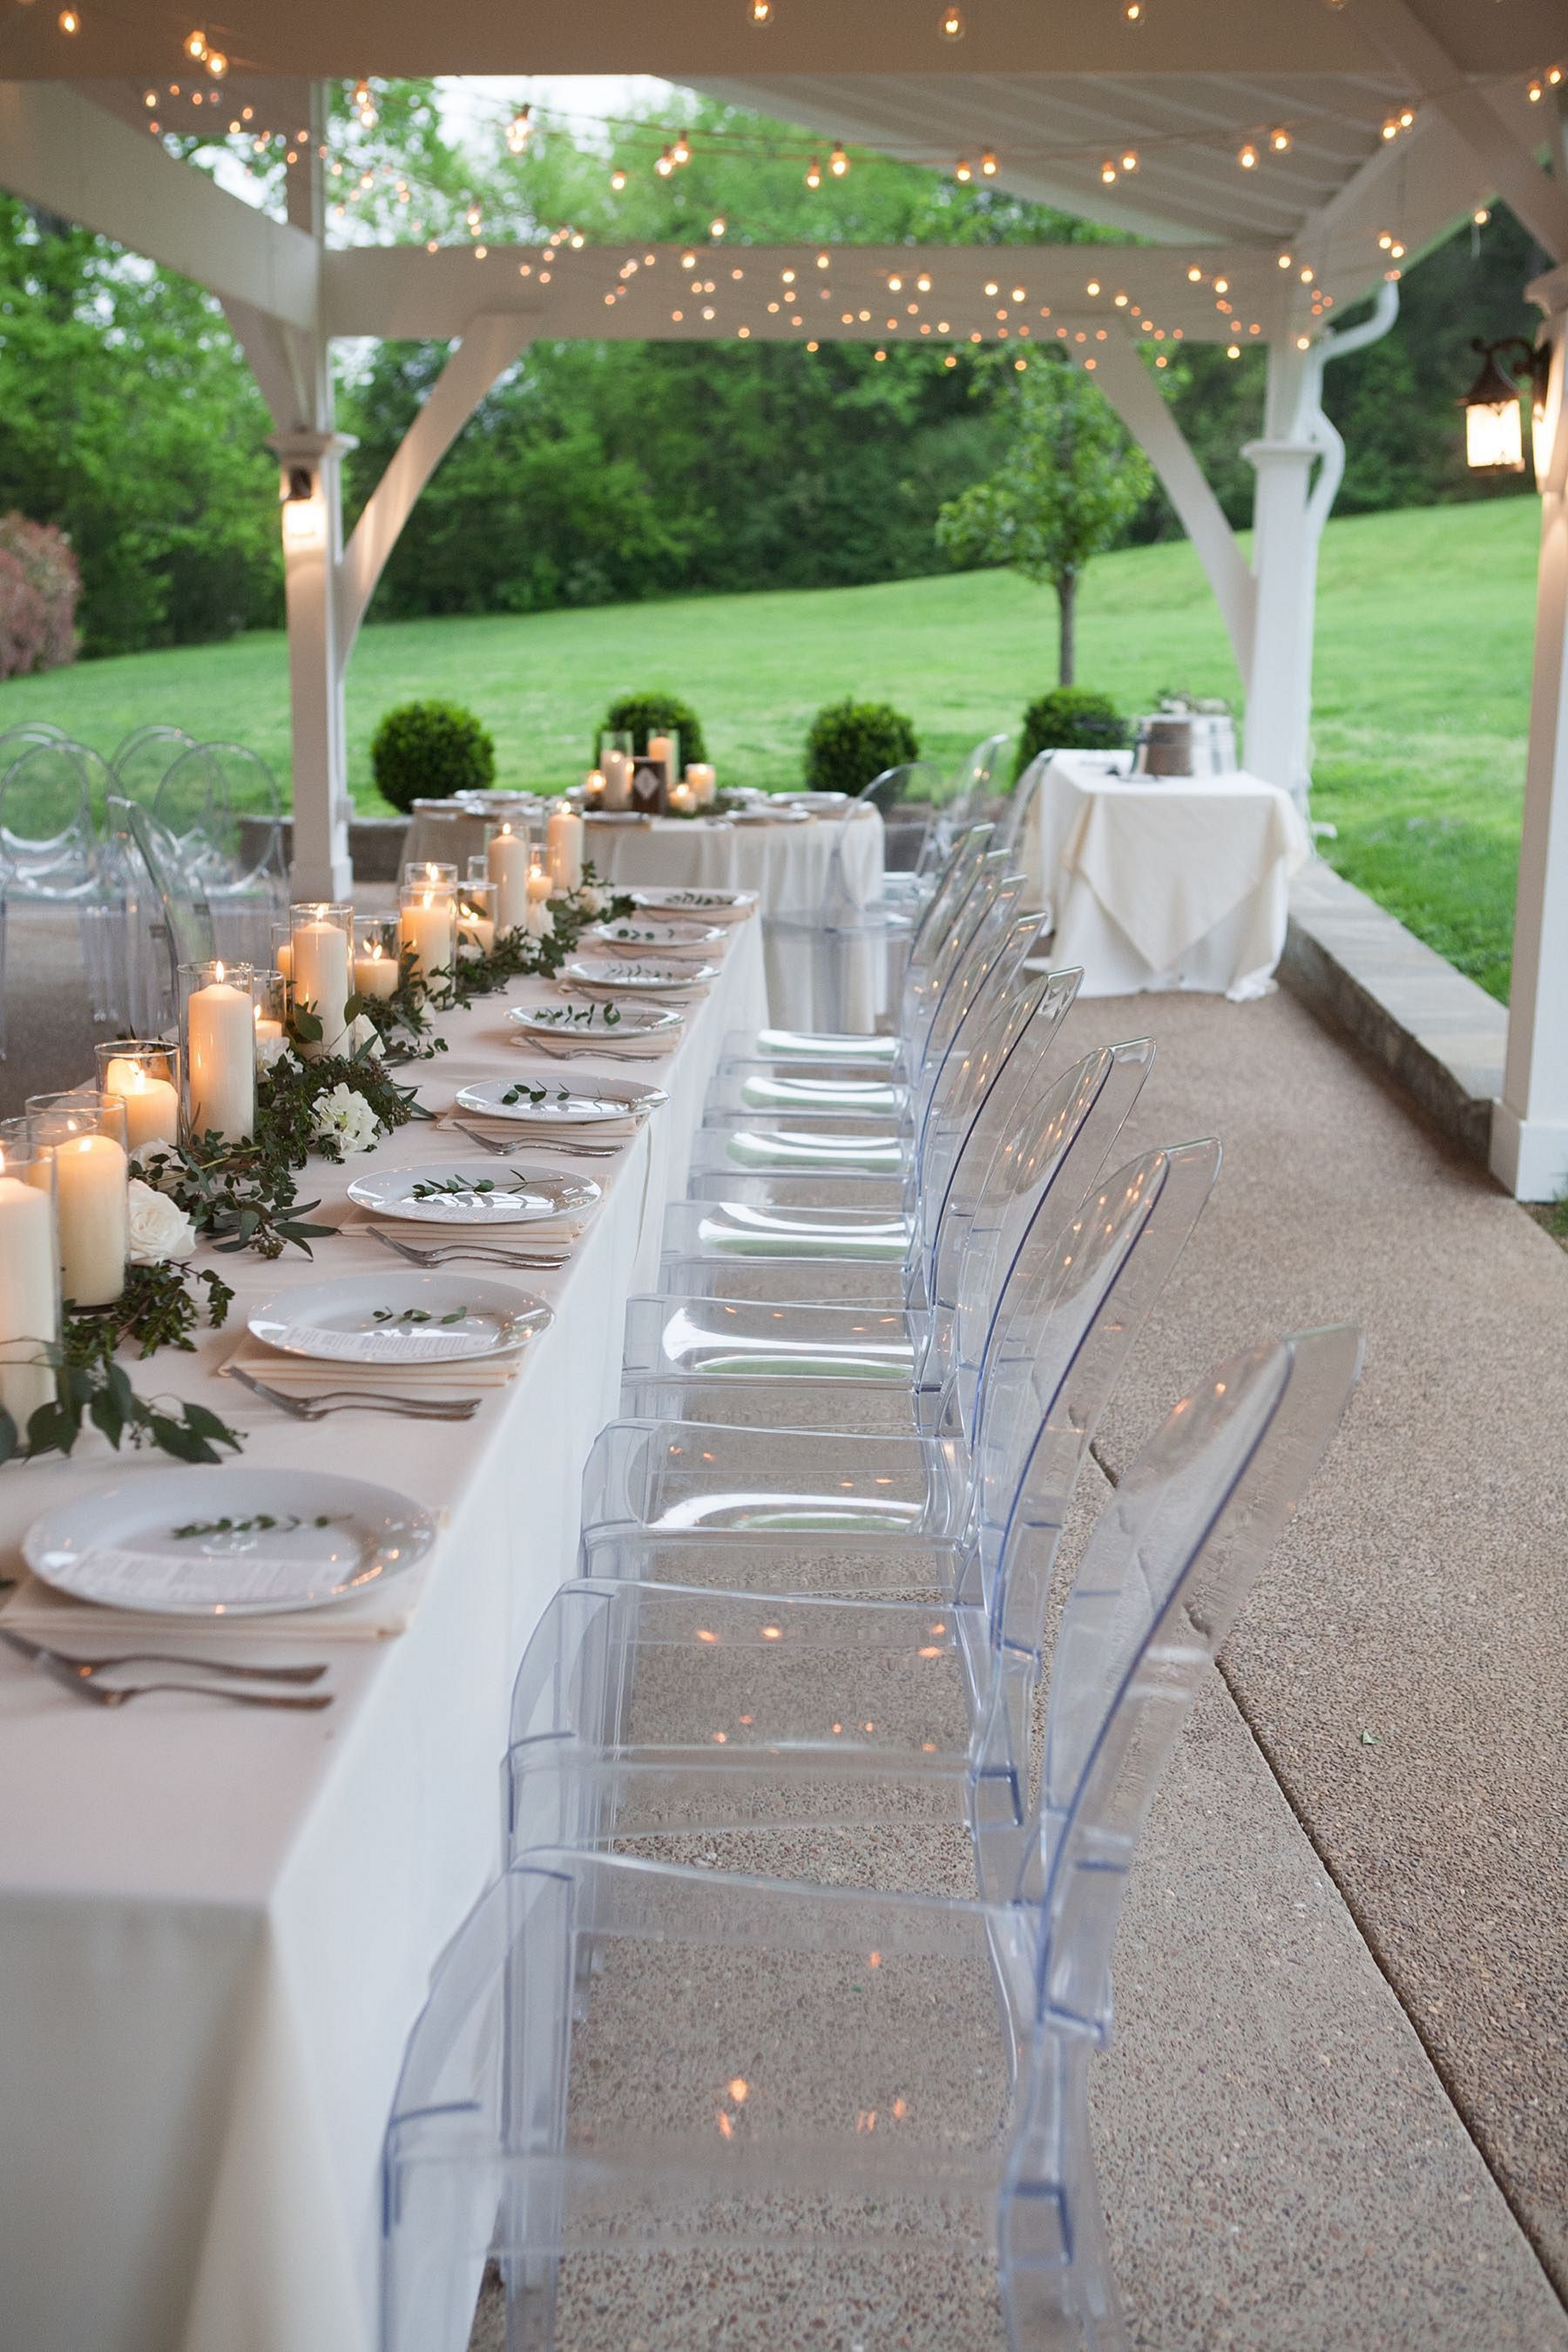 Simple wedding decoration ideas for reception  Simple And Minimalist Wedding Decor Inspirations  Most Awesome